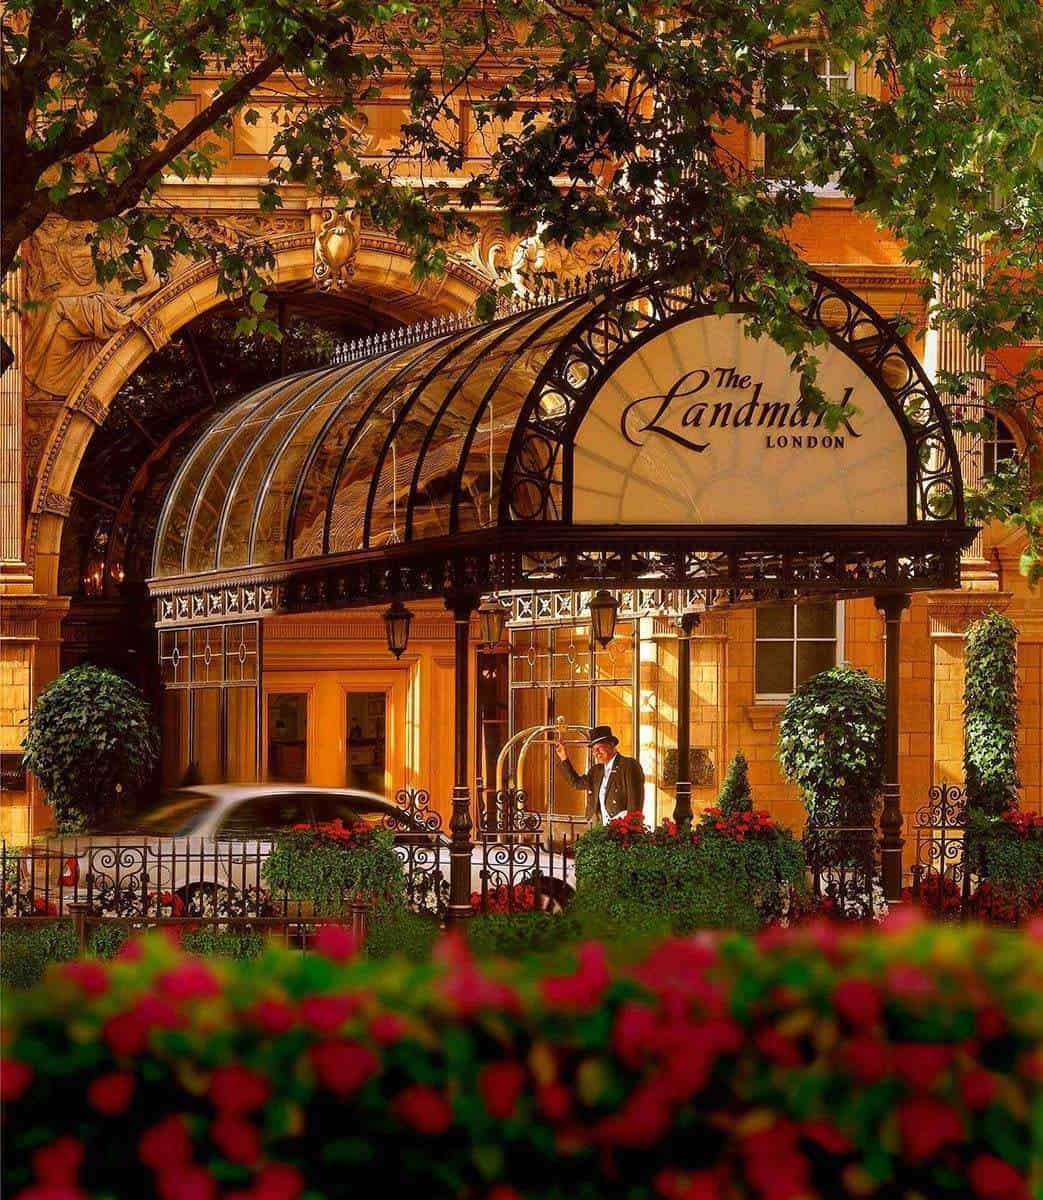 Review: The Landmark London